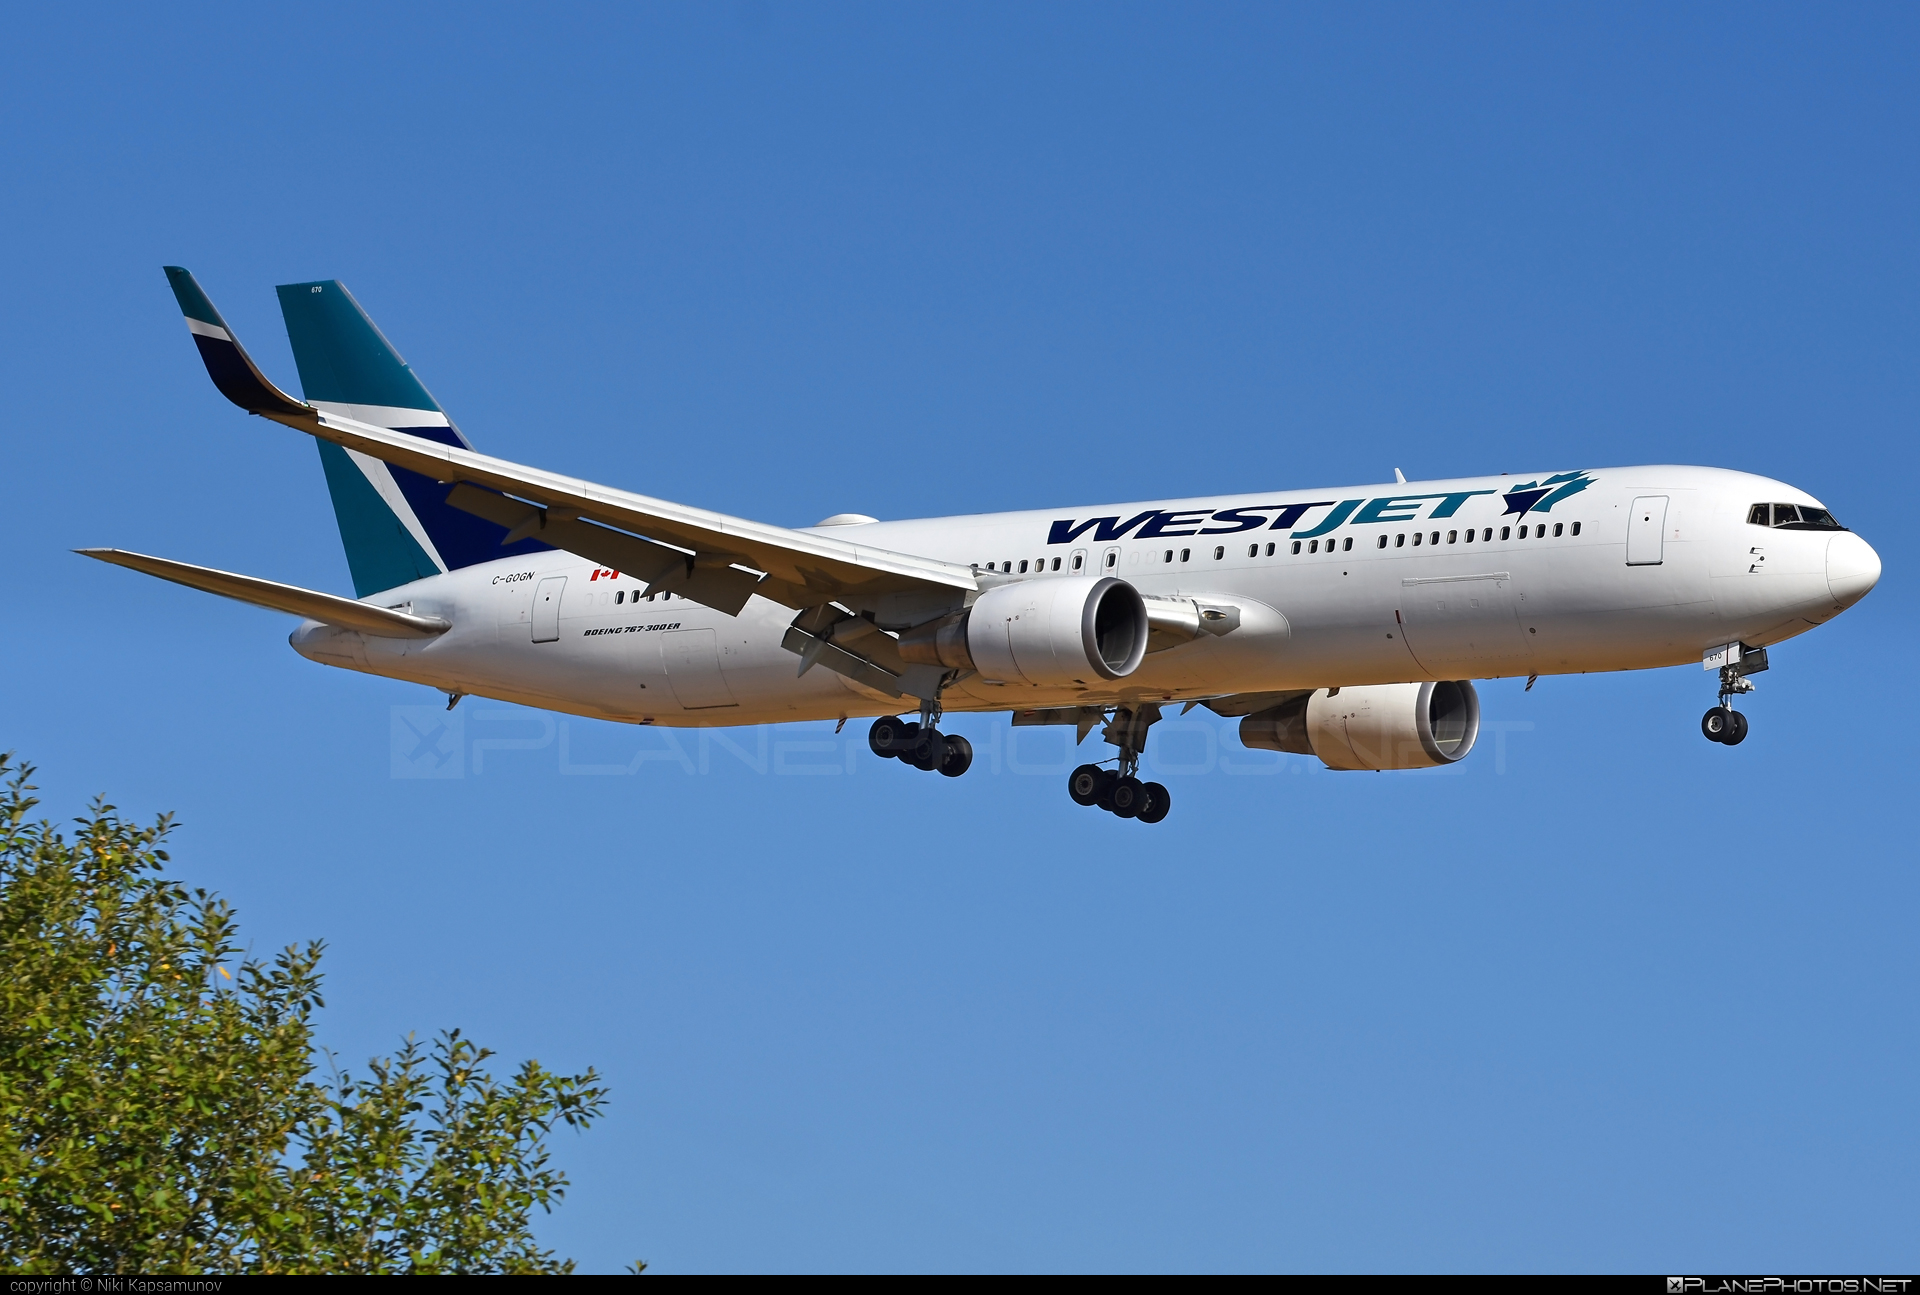 Boeing 767-300ER - C-GOGN operated by WestJet Airlines #b767 #b767er #boeing #boeing767